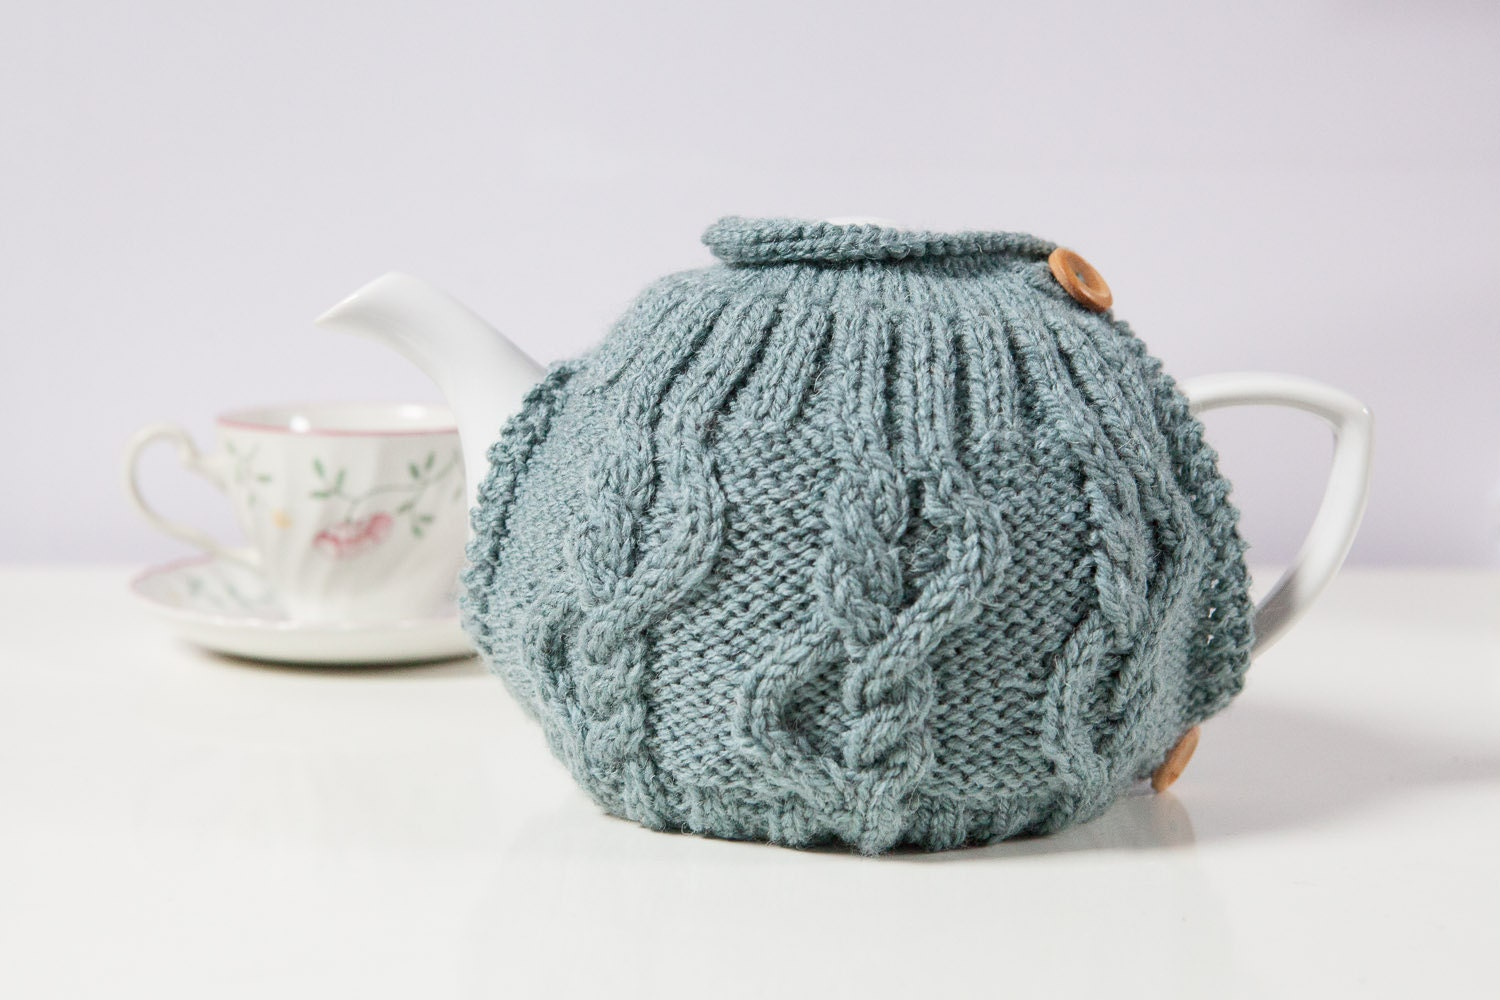 Hand Knitted Tea Cosy Patterns : Blue hand knit tea cosy Teapot cosy Wool tea cosy by SweetMaya